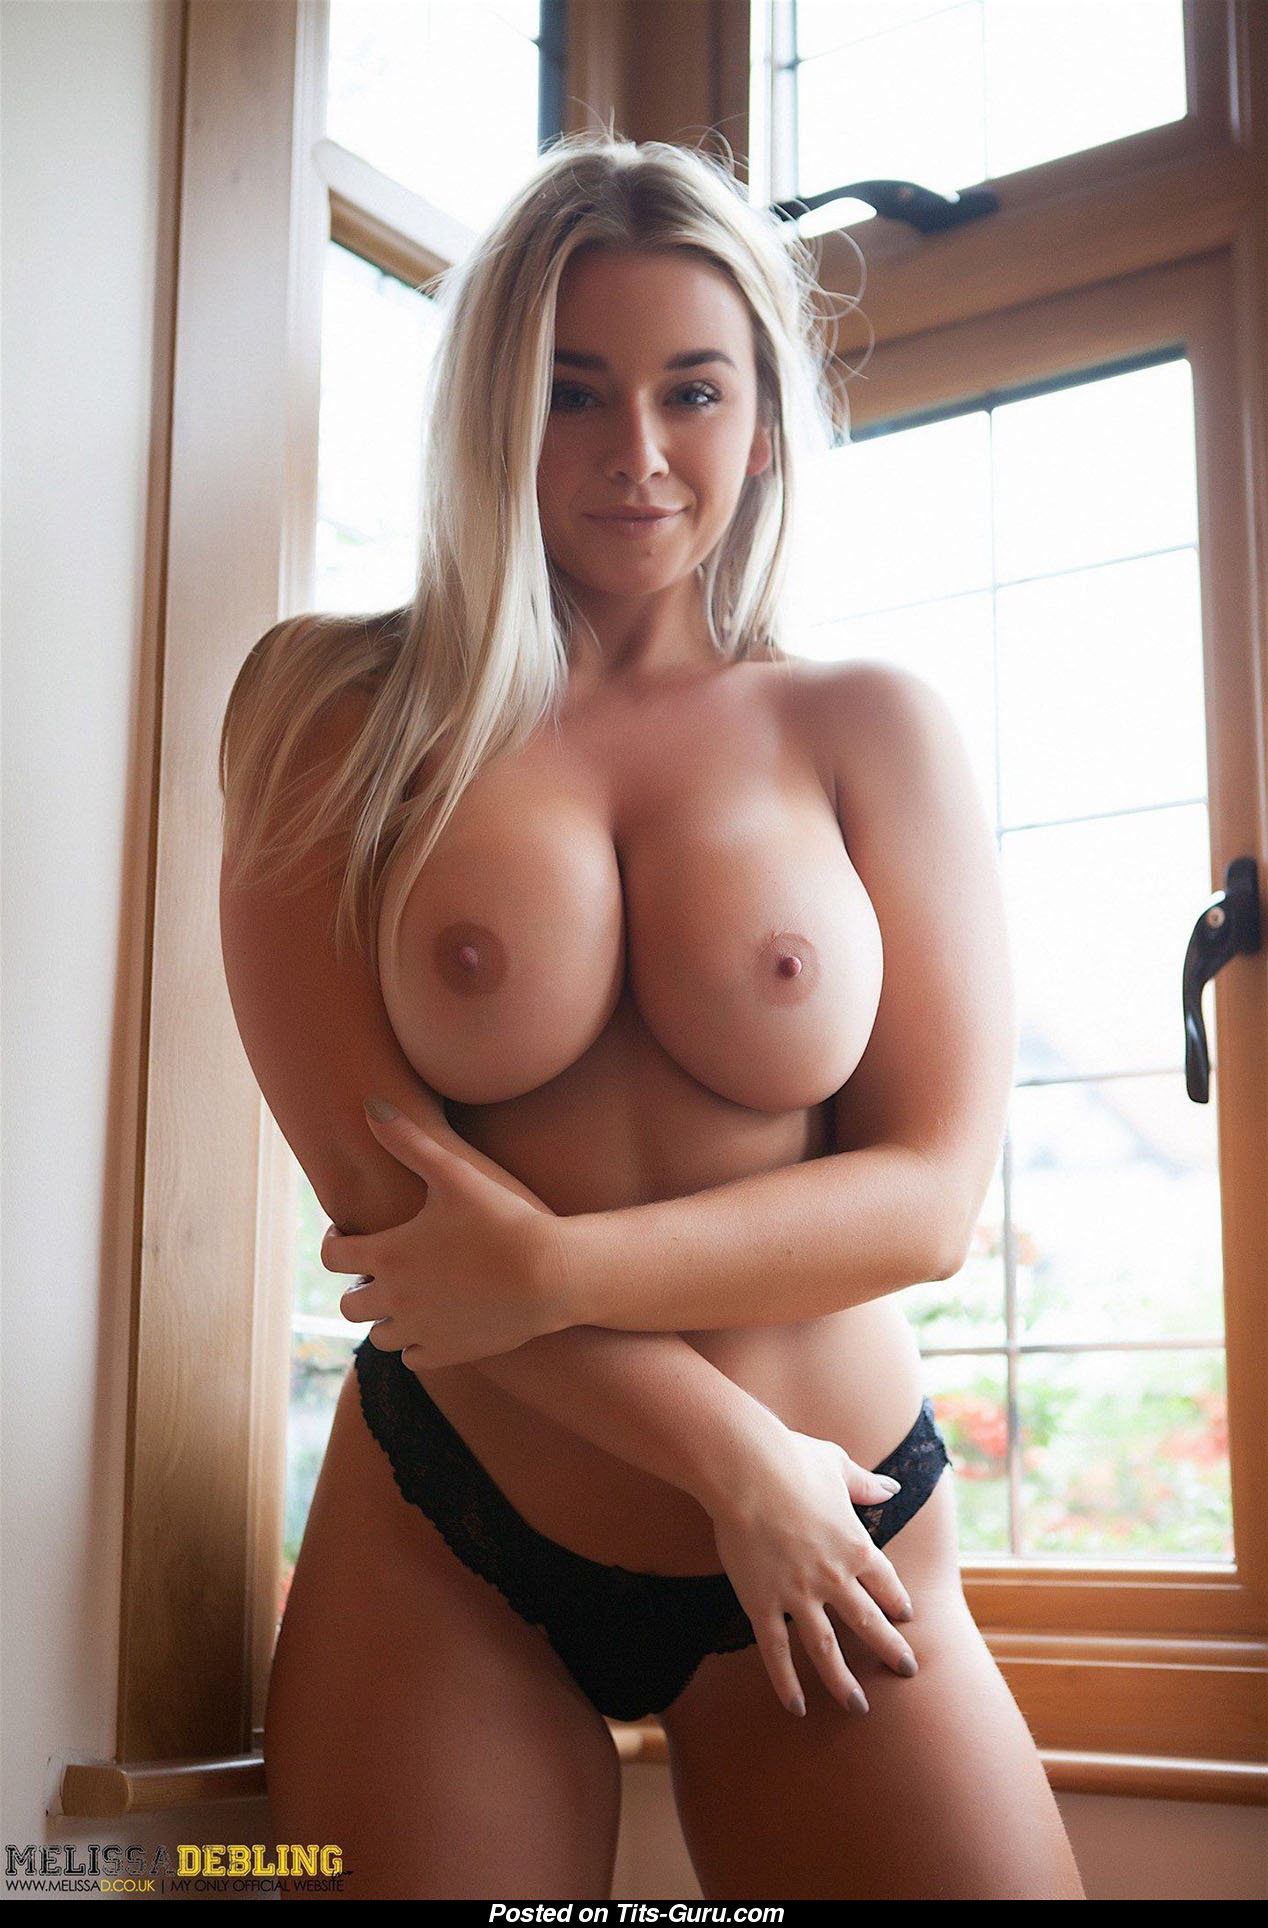 Free images of nude celebrities